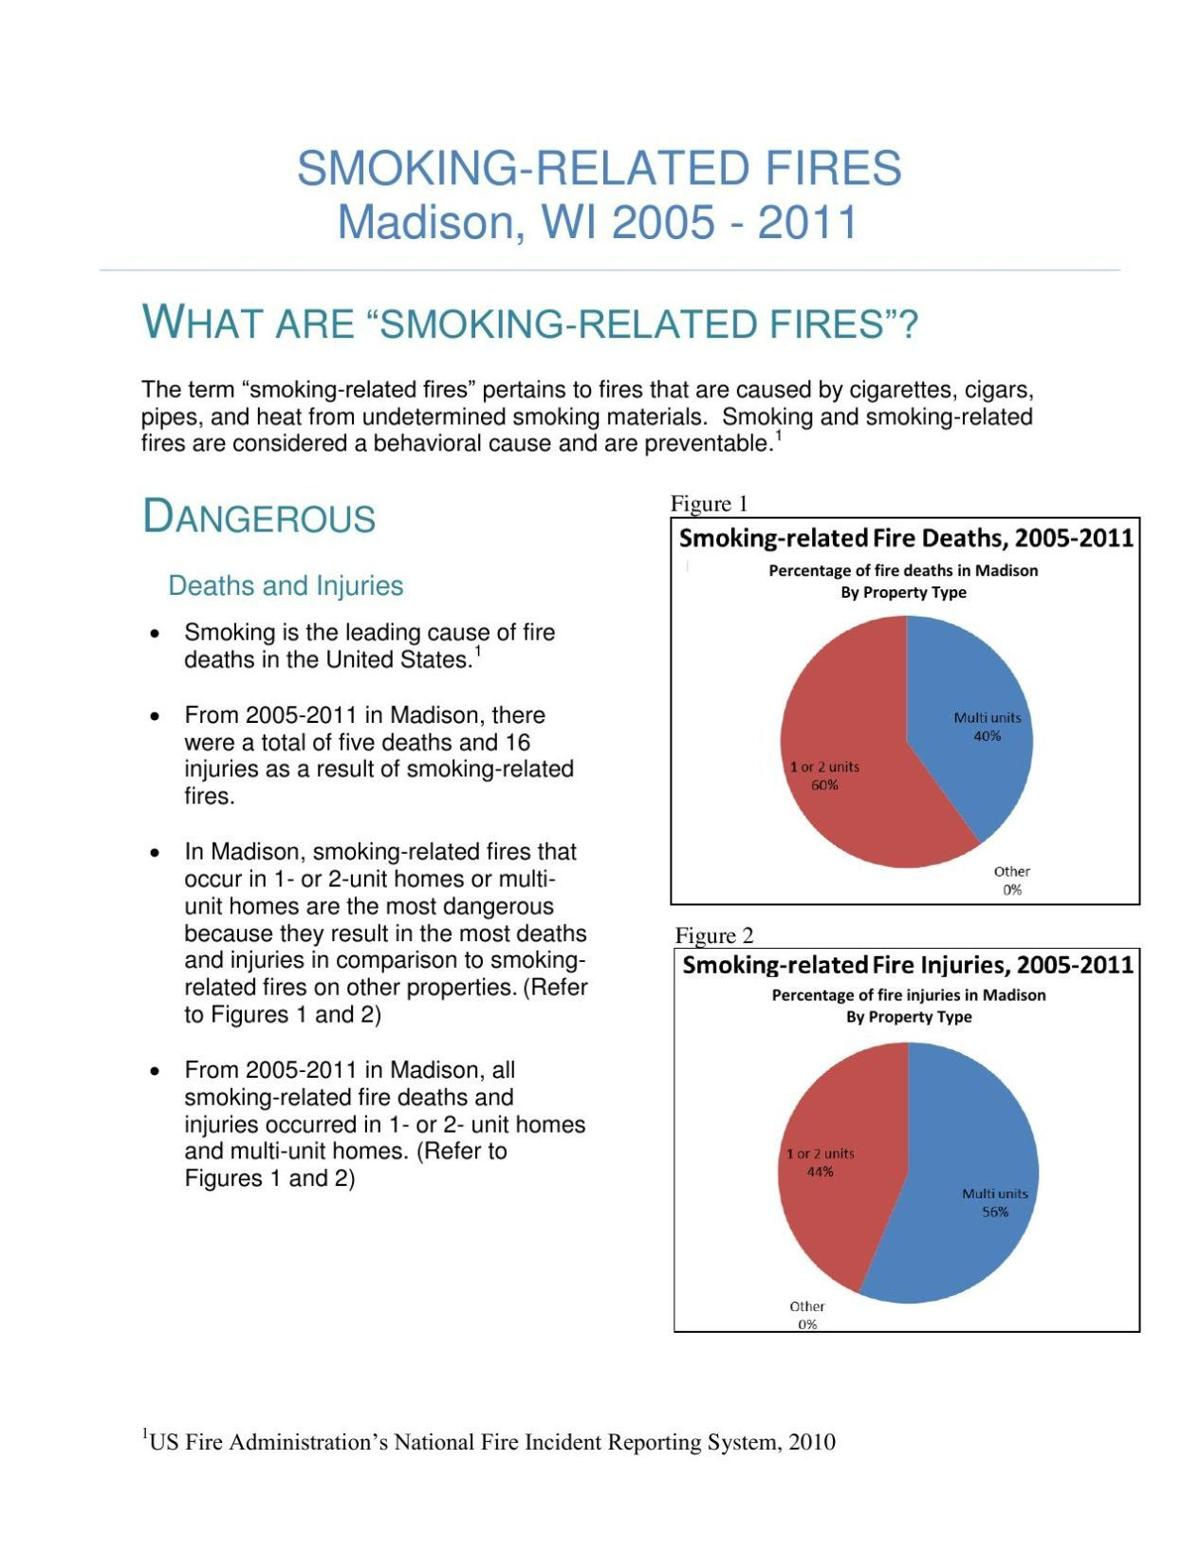 ABOUT SMOKING-RELATED FIRES IN MADISON